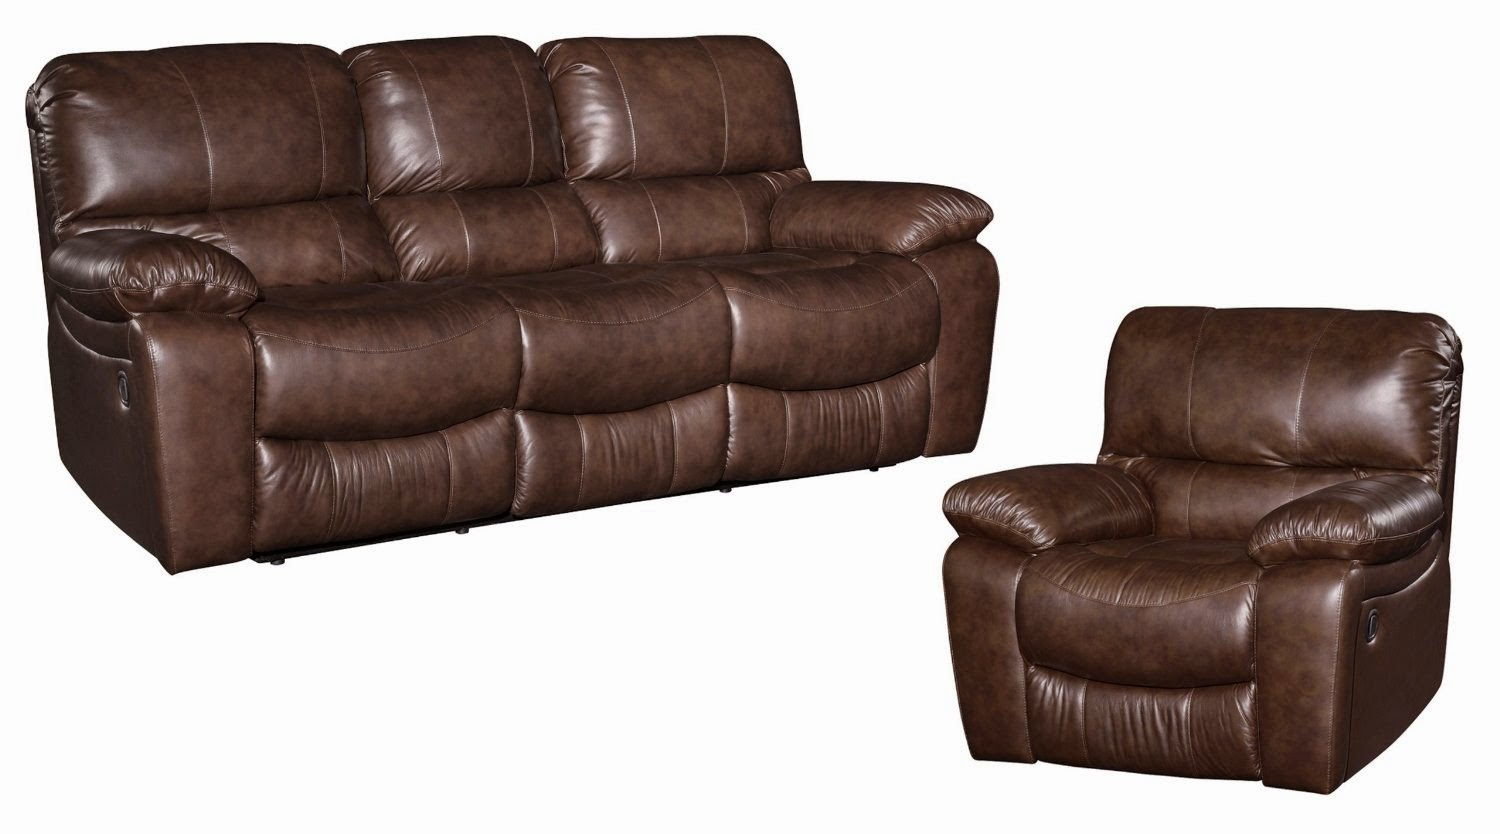 Sofa Covers Online Dubai Leather Upholstery London Fabric Cover For Wonderful Extra Long